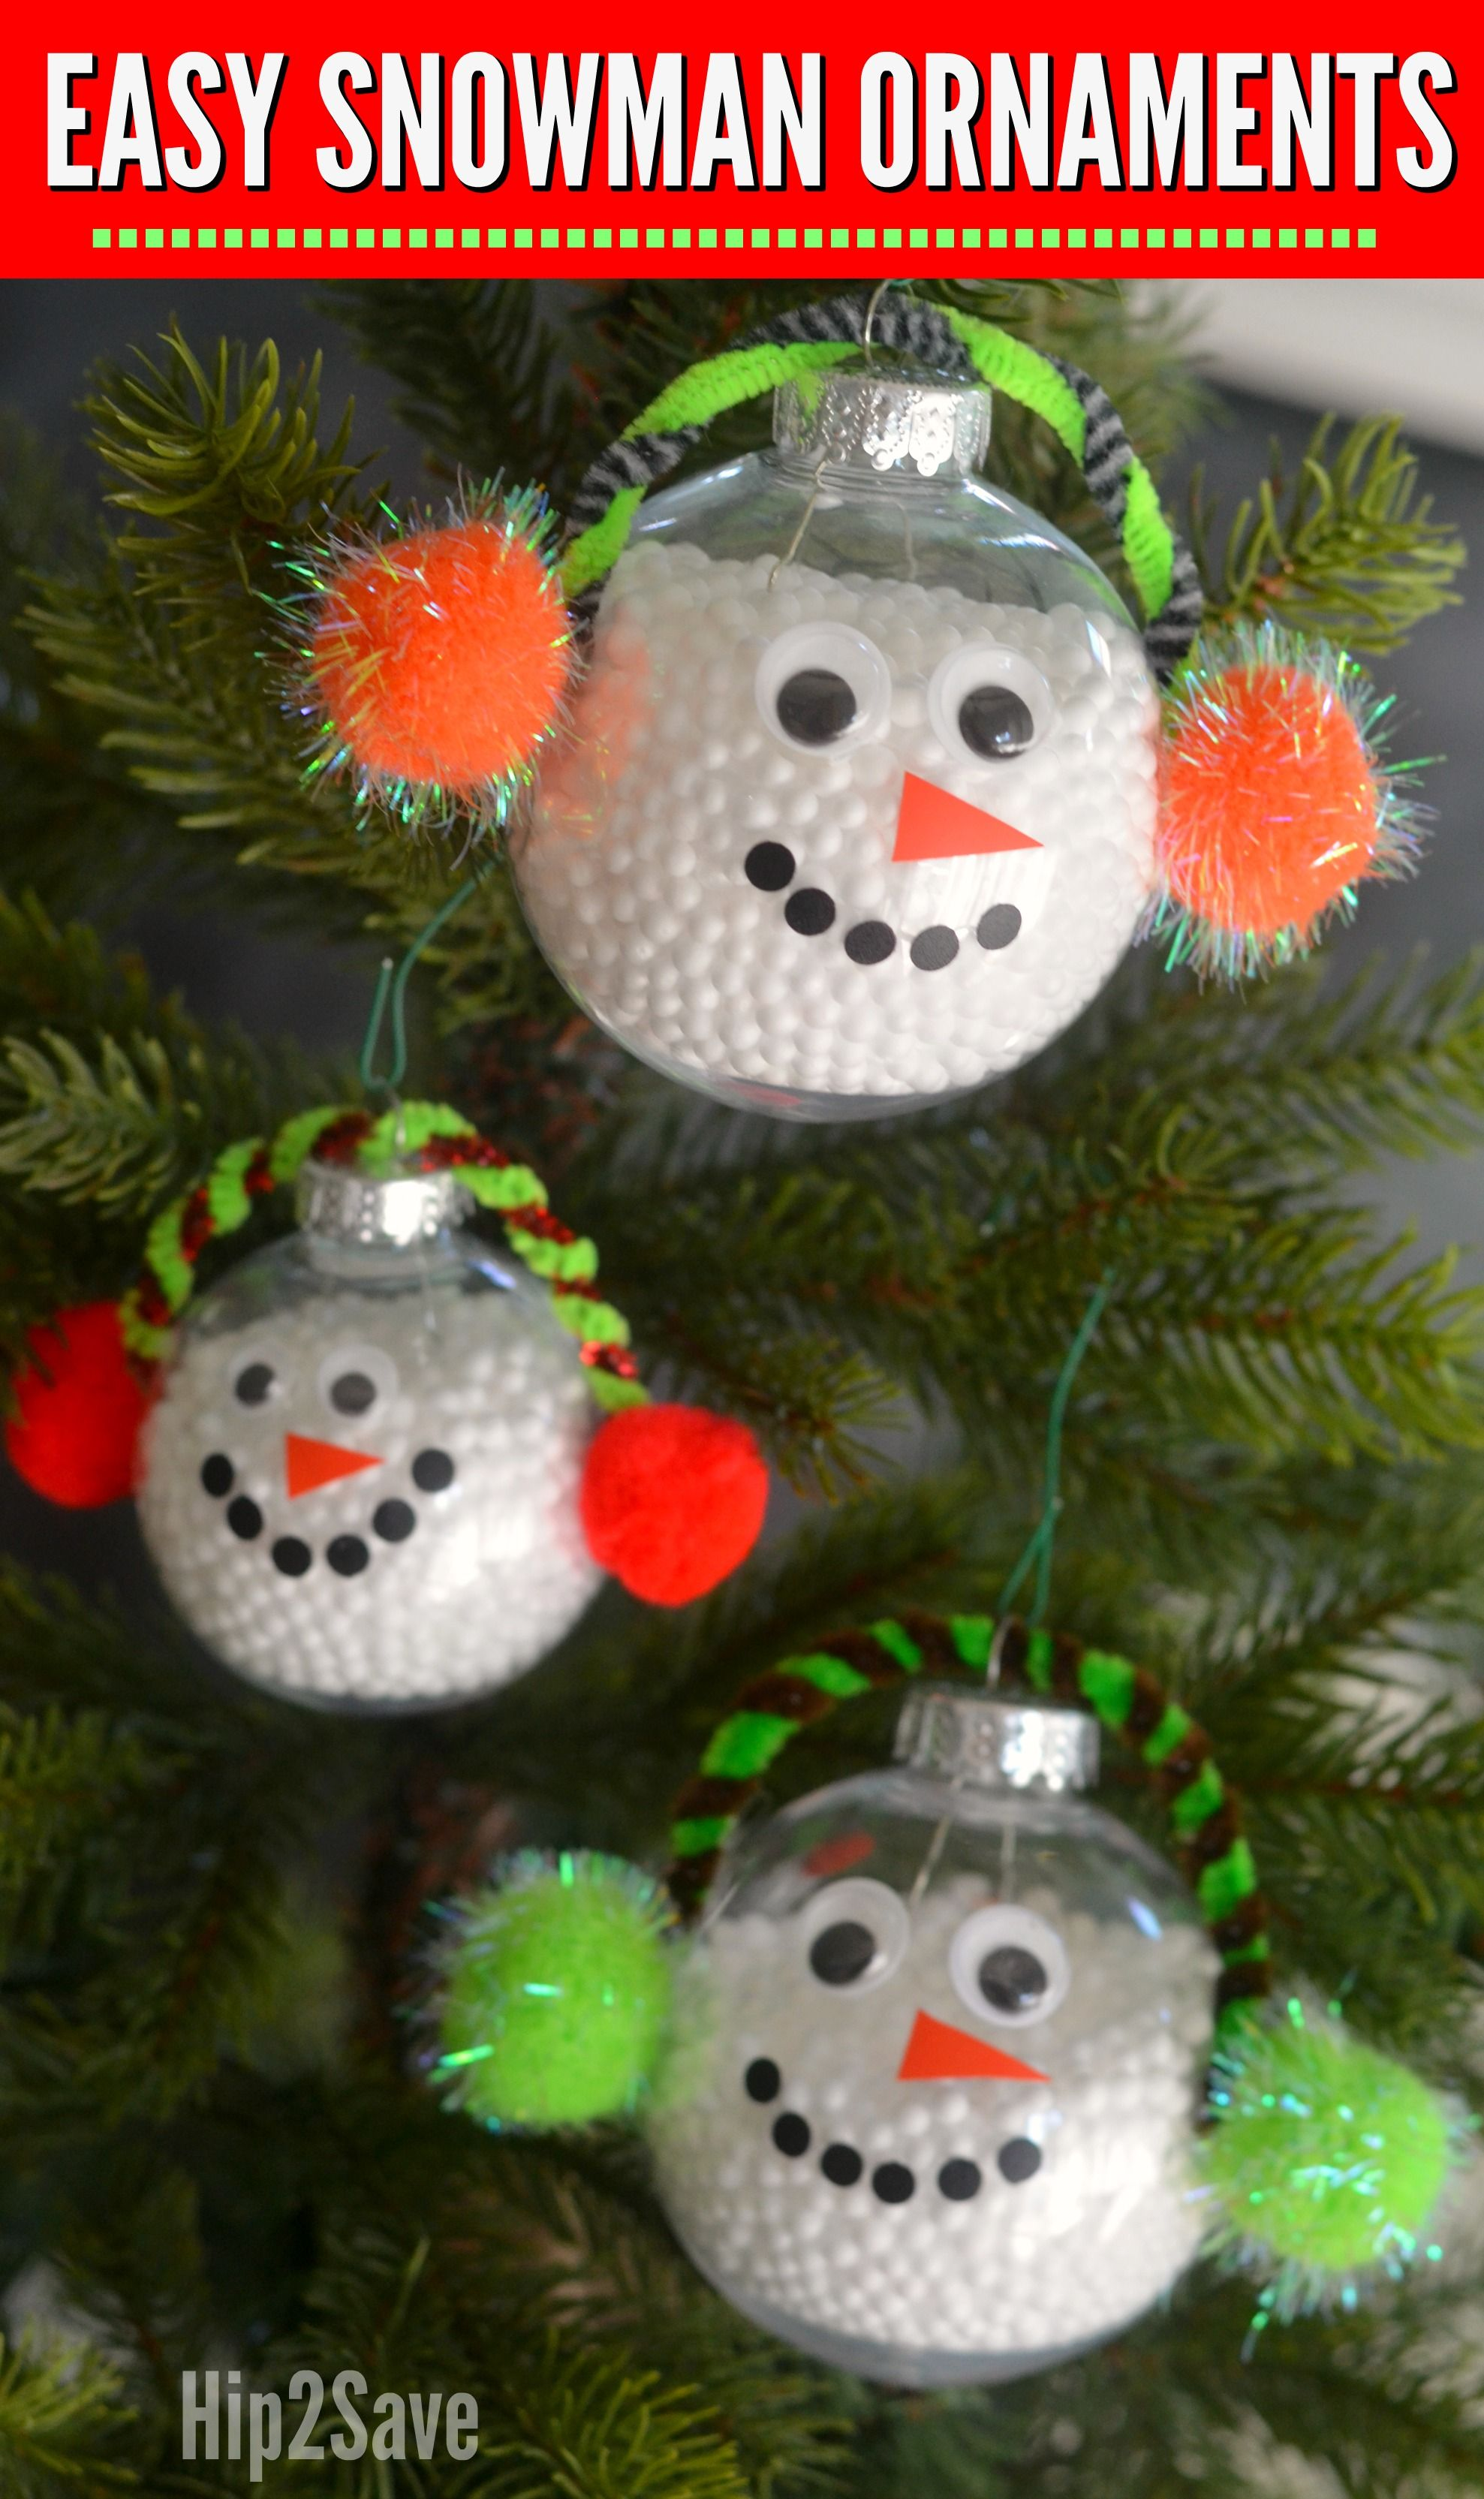 Turn Clear Ornaments Into A Cute Snowman To Hang On The Tree With